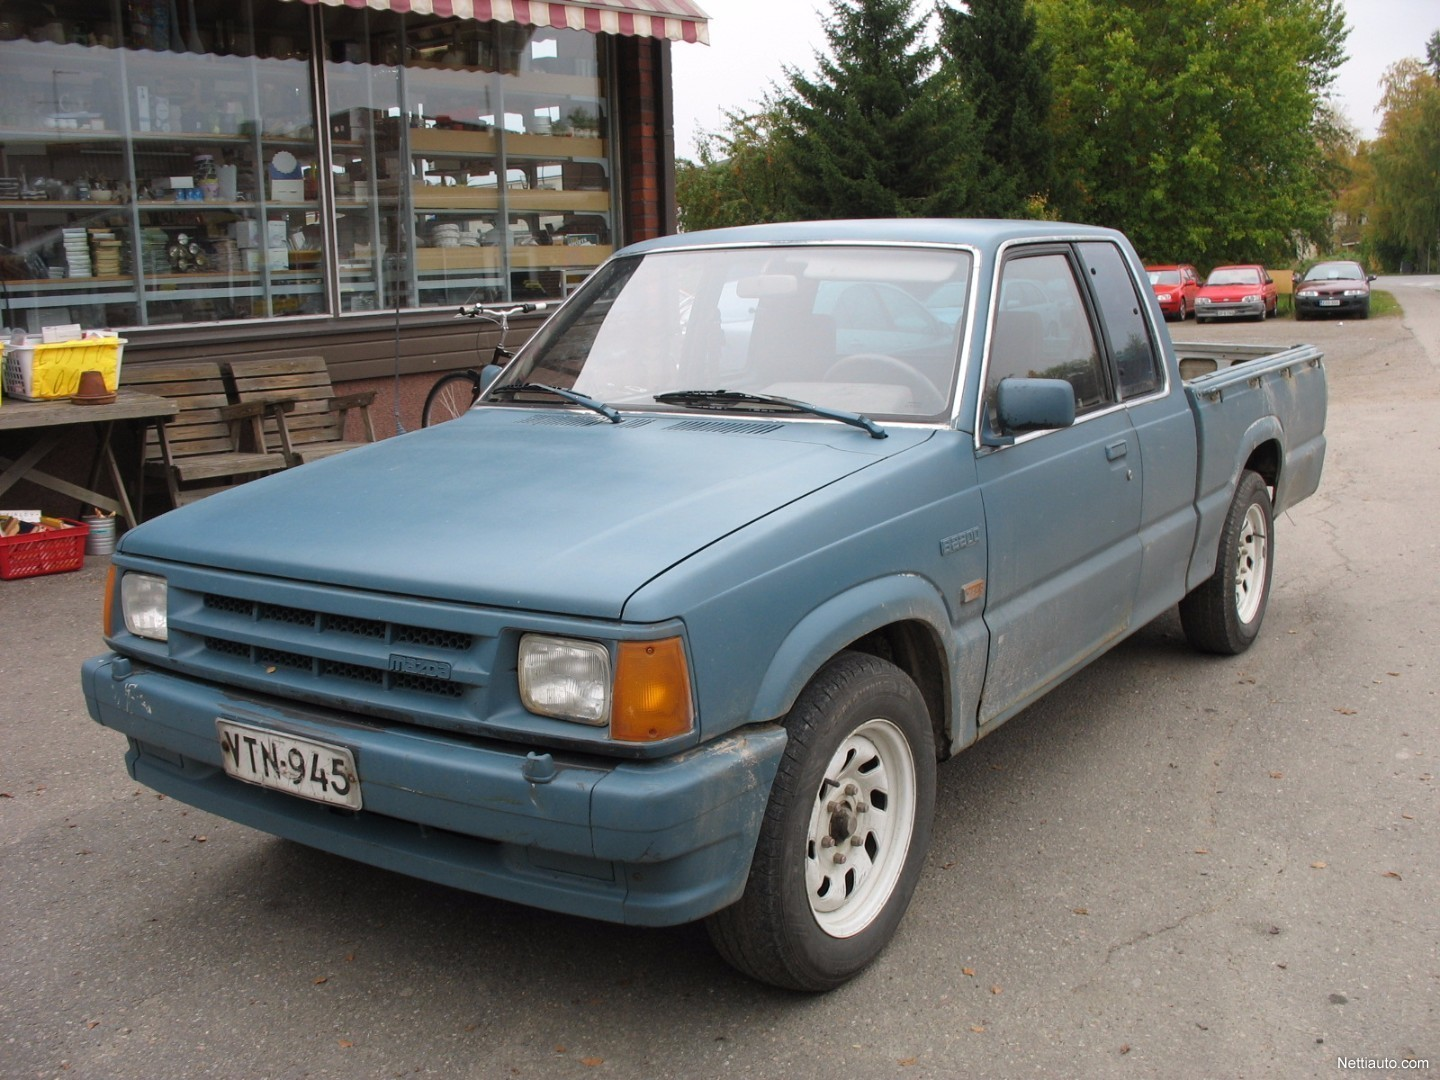 mazda pick up b2200 diesel avolava 1989 vaihtoauto nettiauto. Black Bedroom Furniture Sets. Home Design Ideas